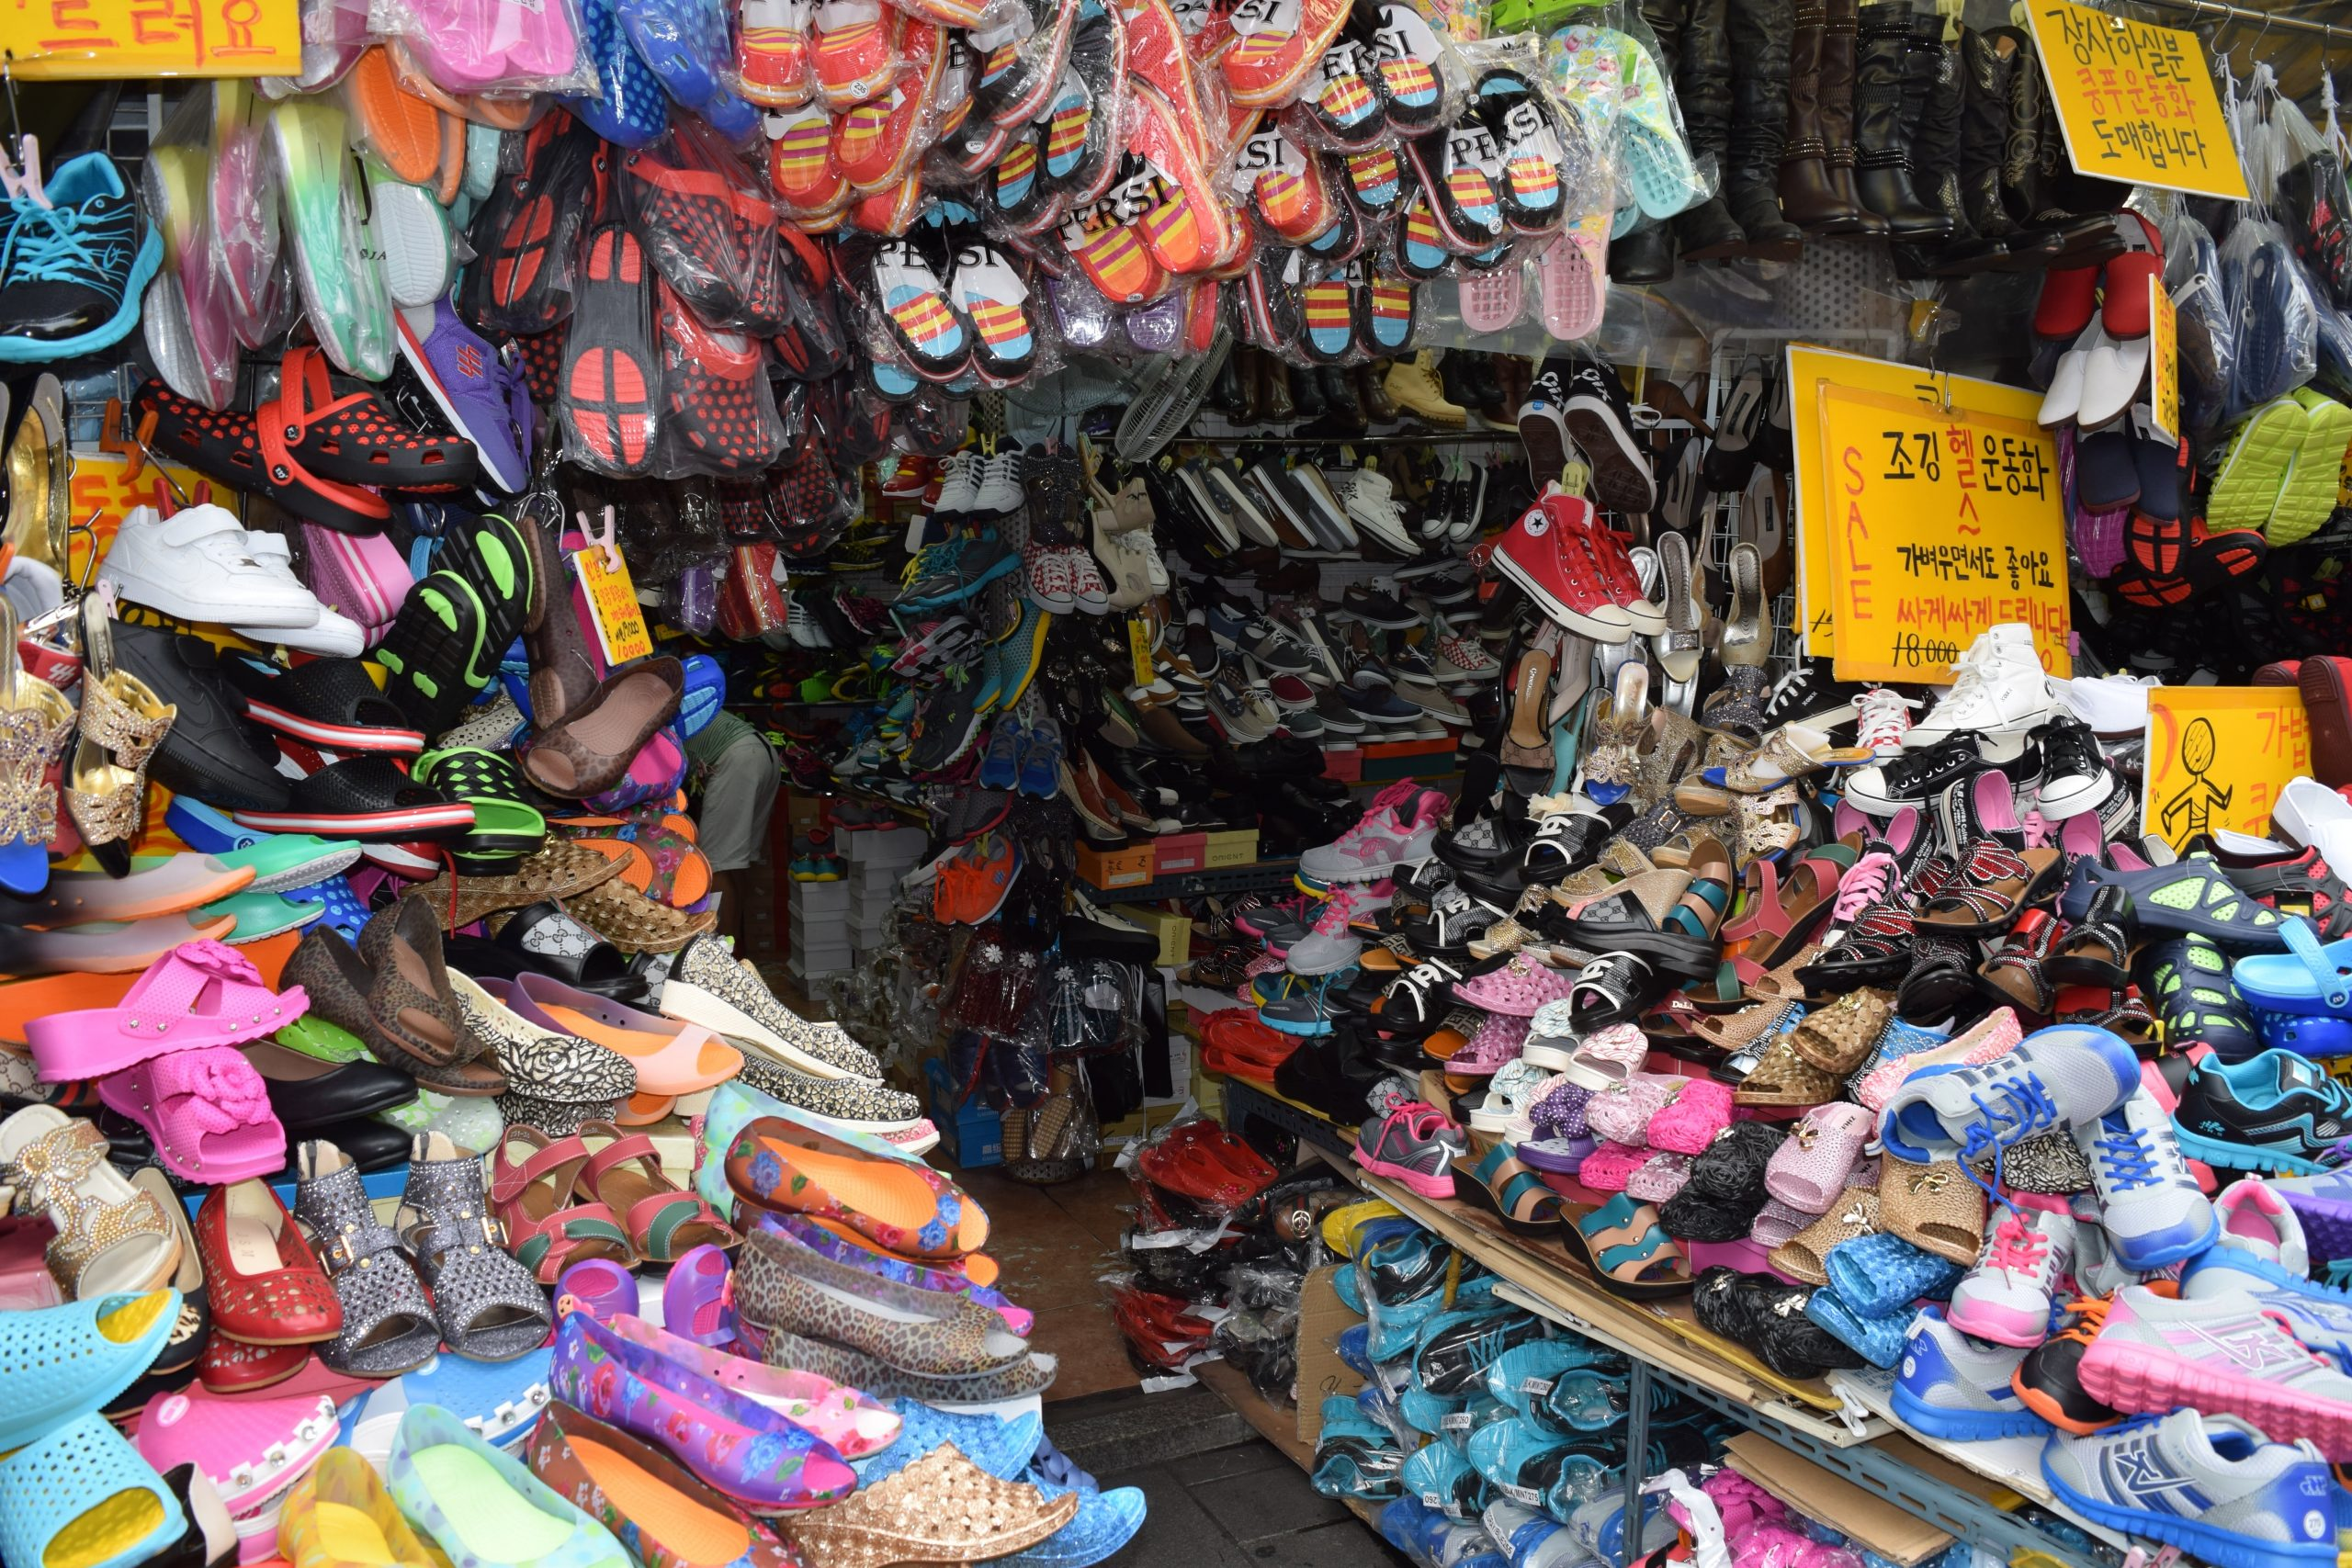 Heritage Market-Best Shopping Spot in Indore to Satisfy the Shopaholic in You